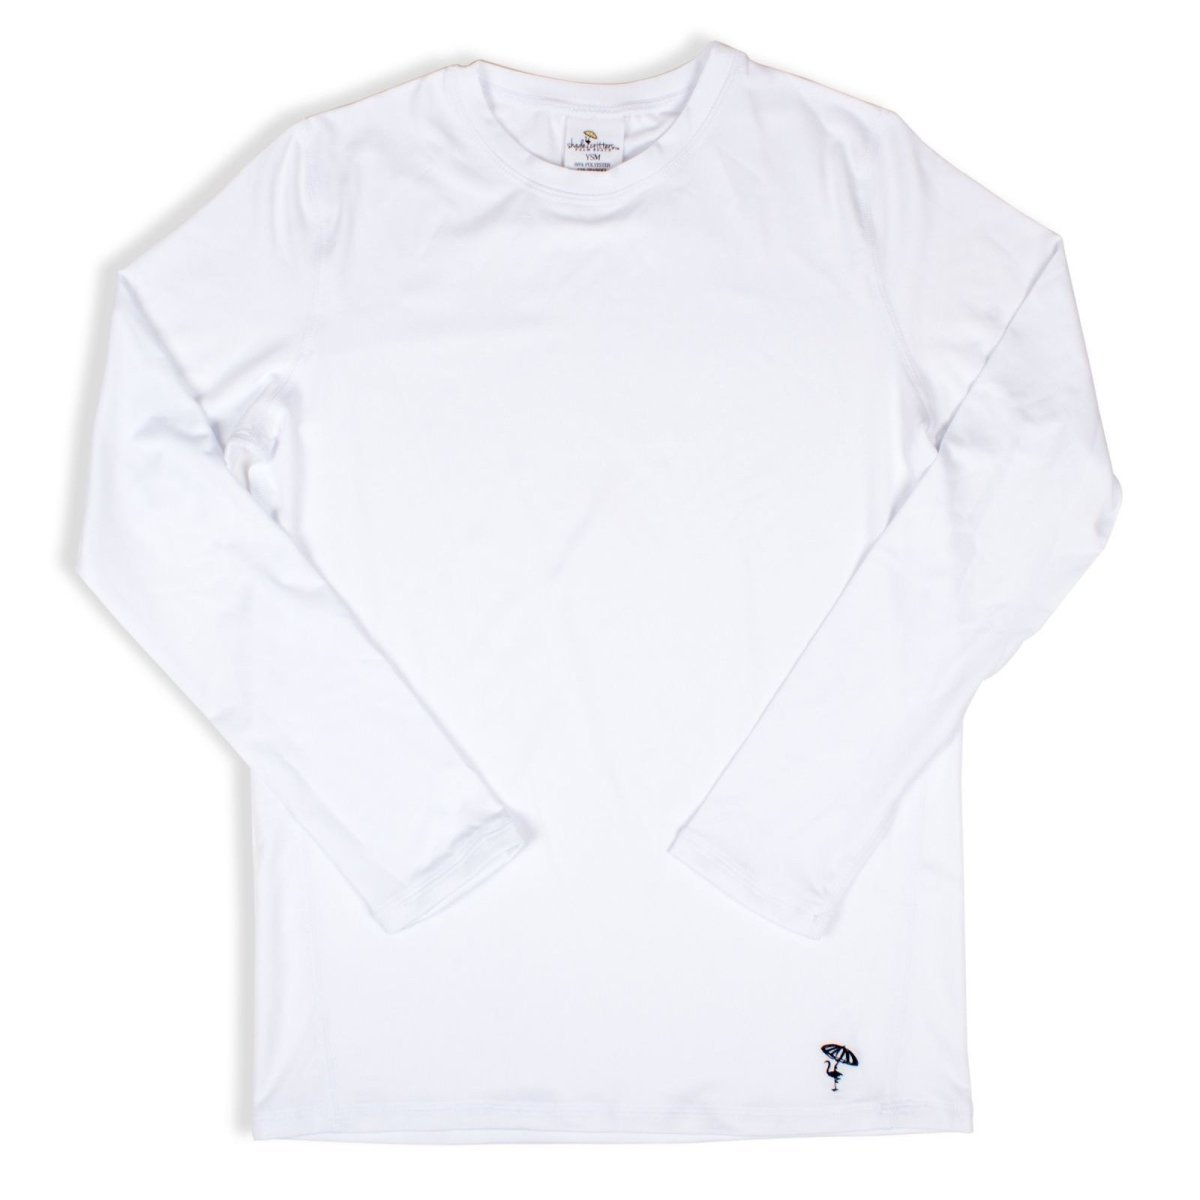 Shade Critters Sun Shirt White